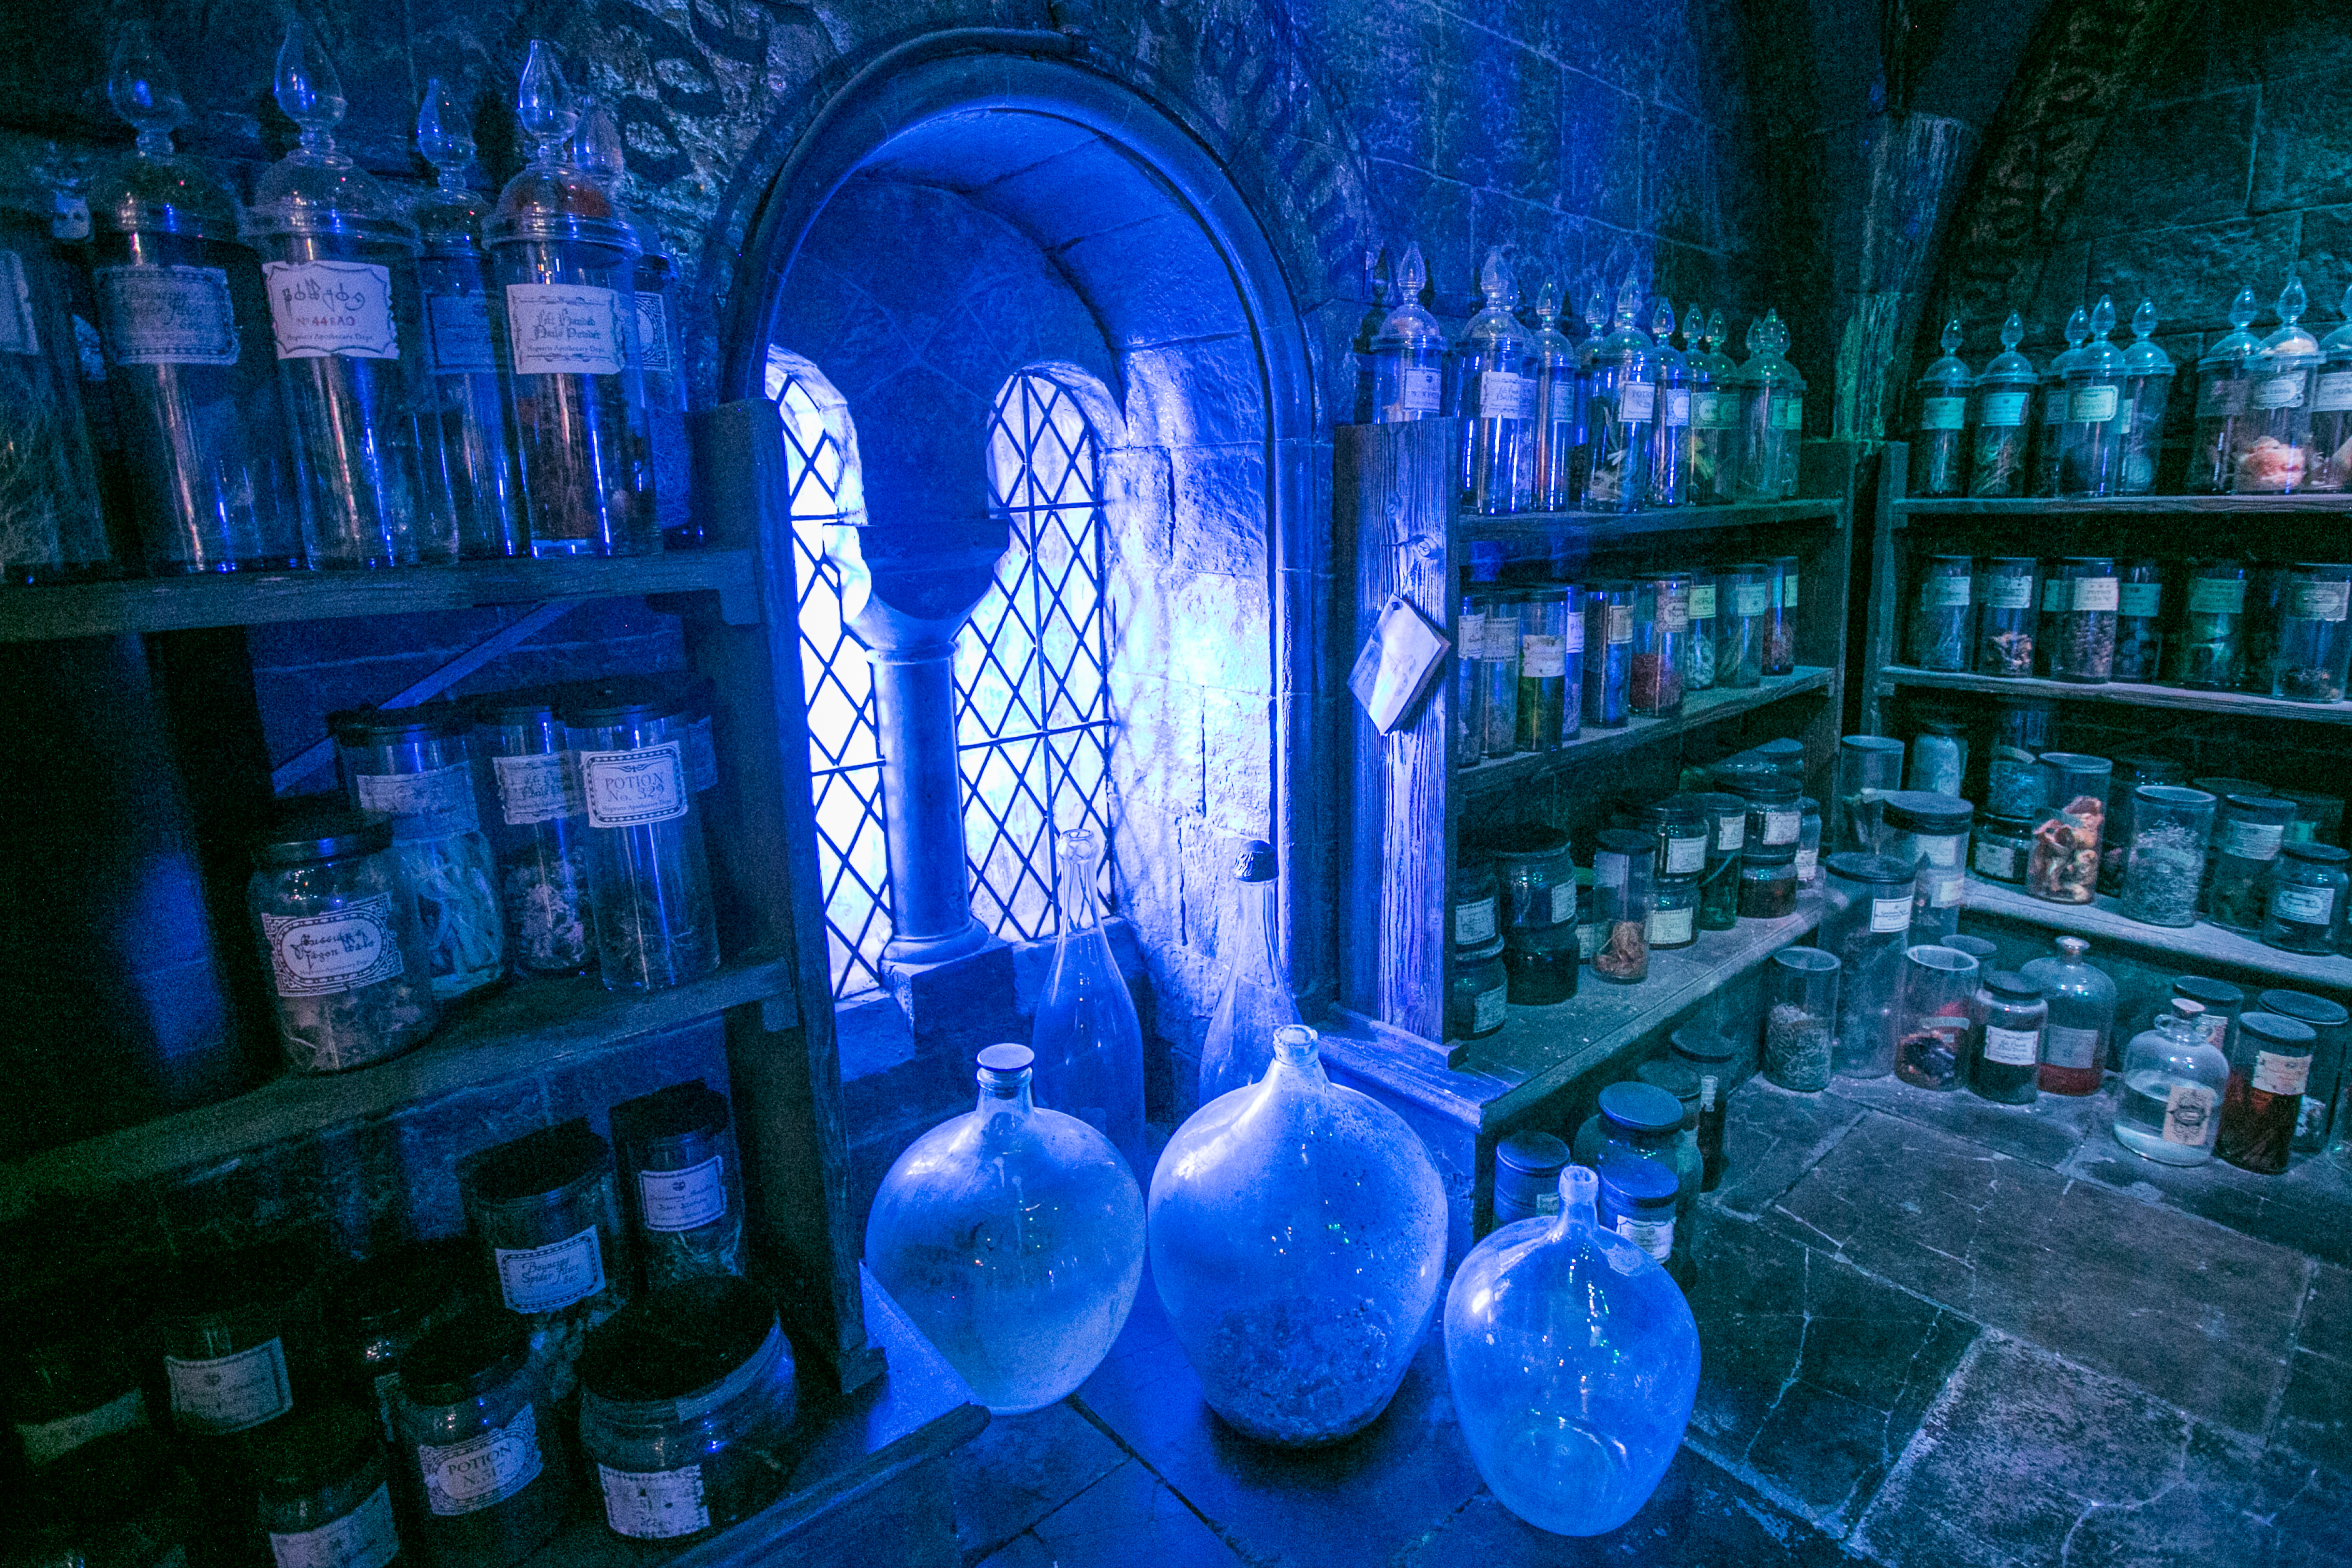 harry-potter-studio-tour-potions-storeroom